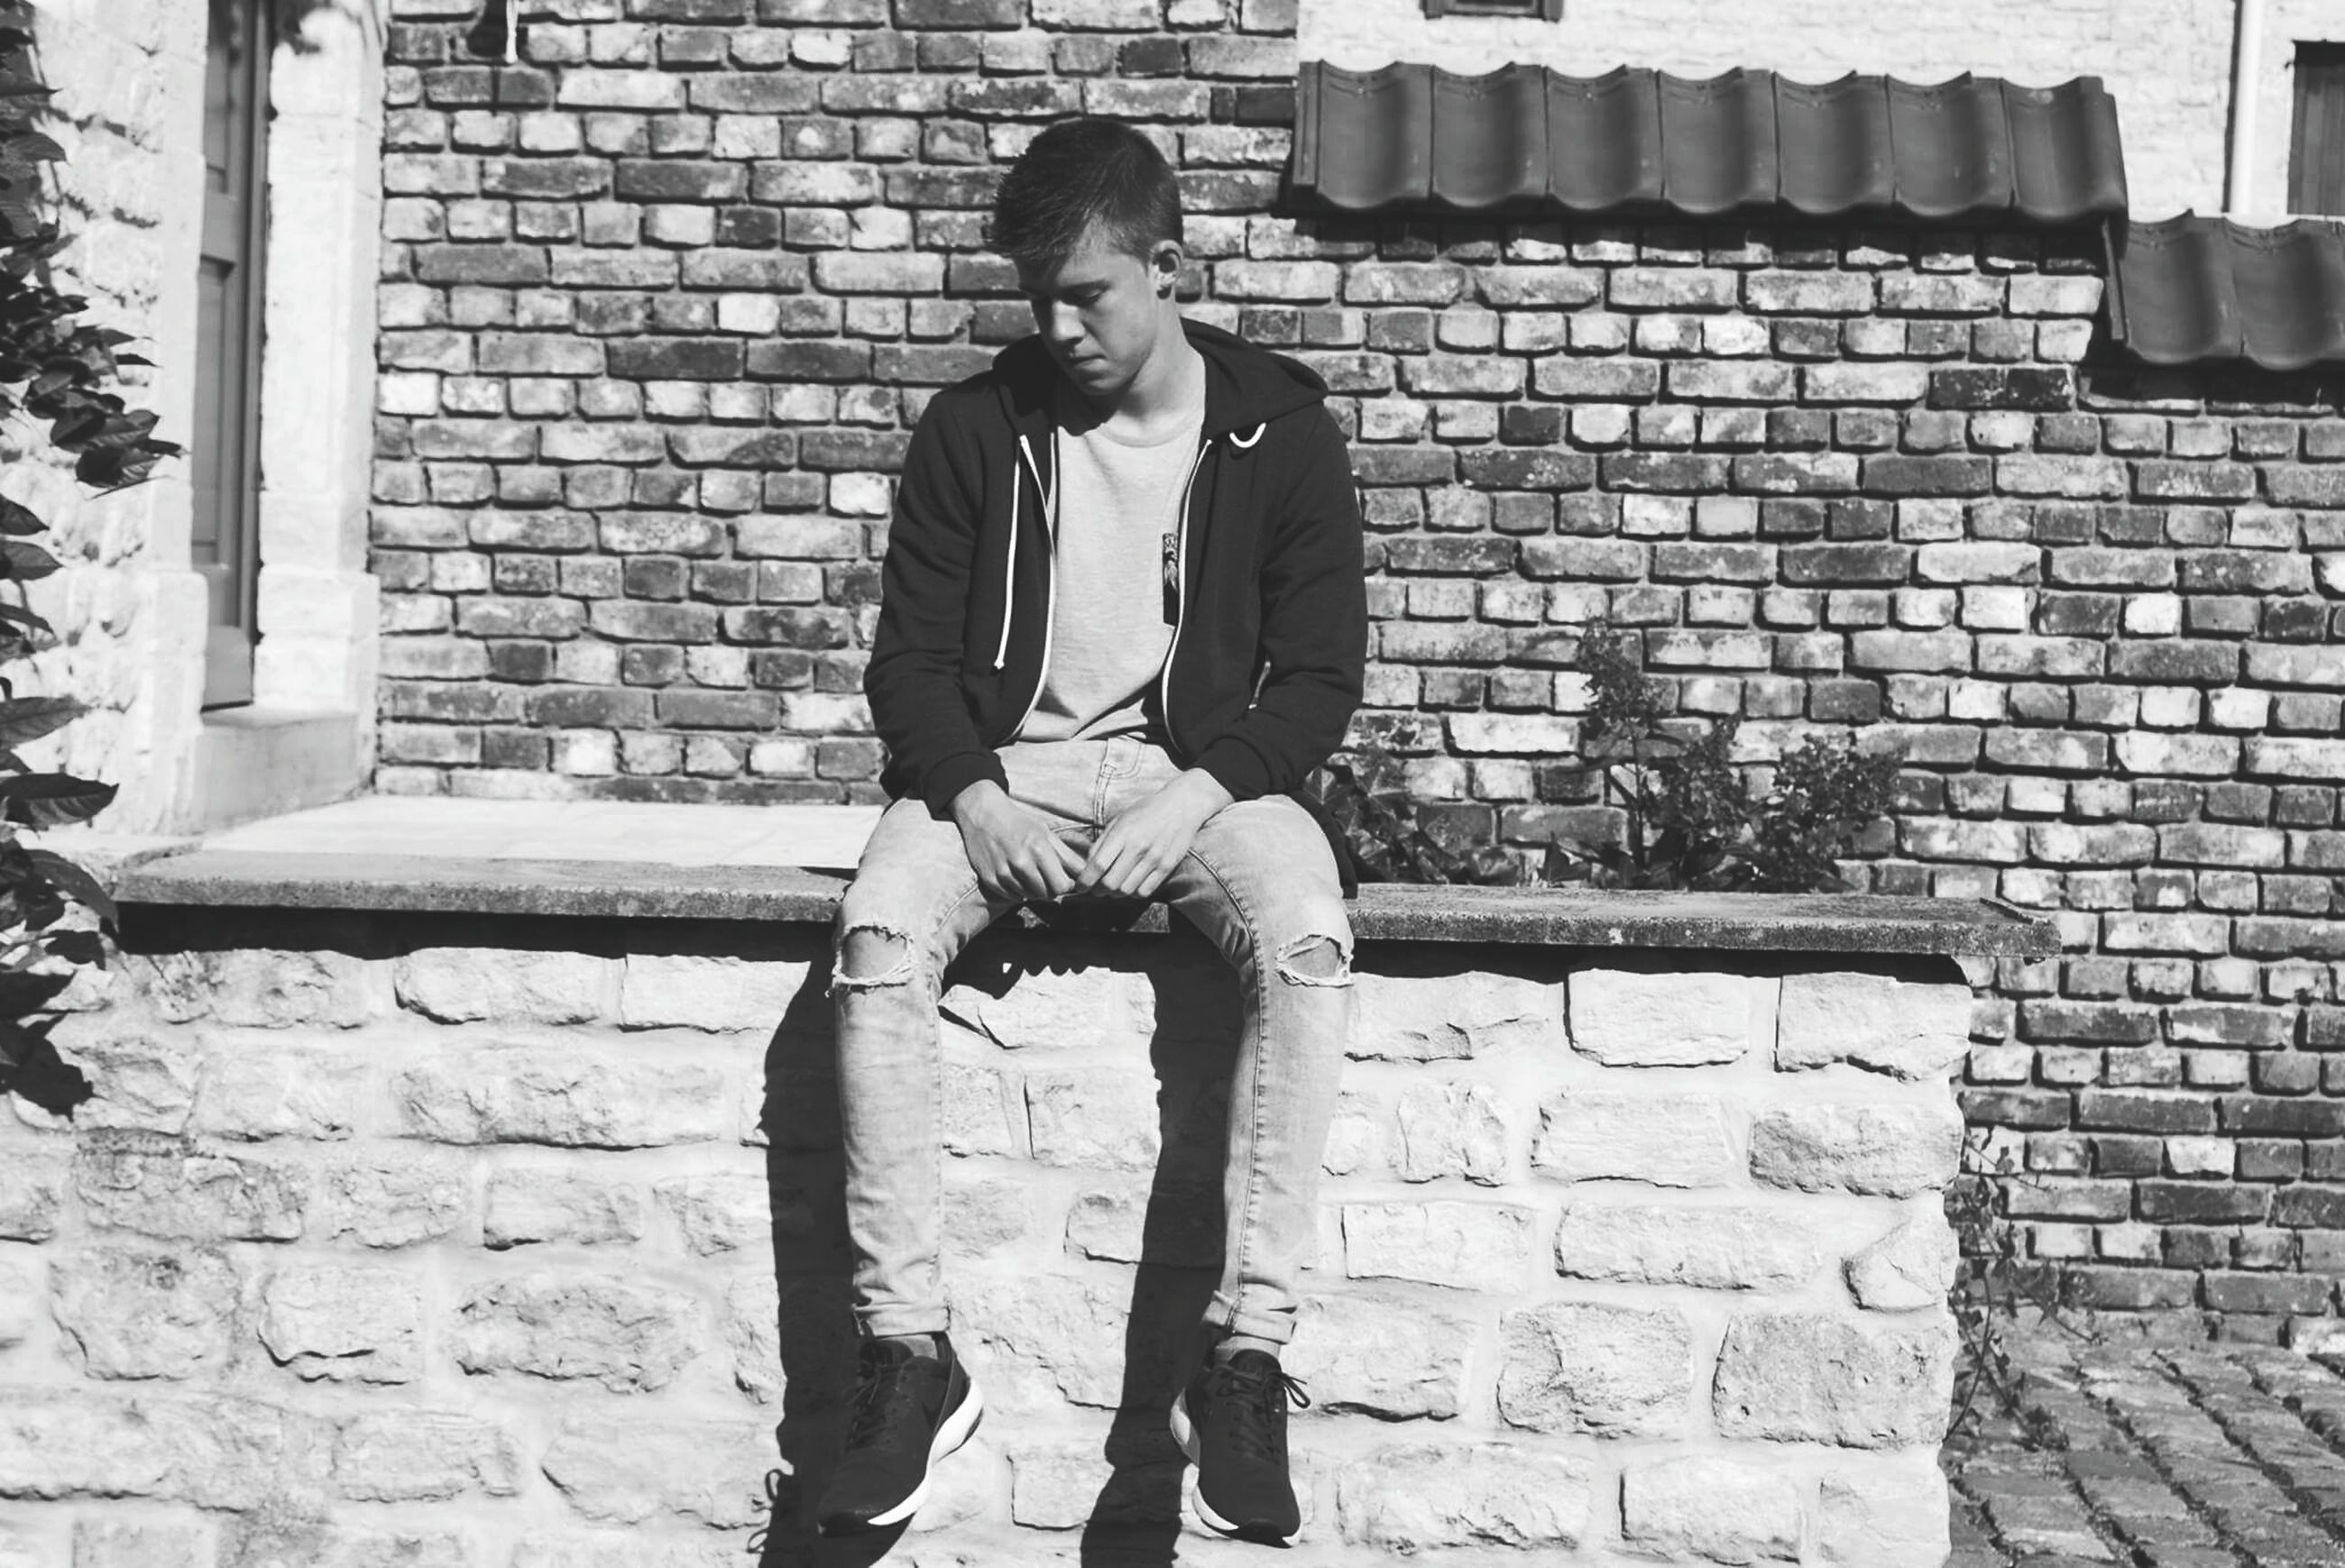 building exterior, casual clothing, person, architecture, built structure, lifestyles, brick wall, young adult, full length, leisure activity, front view, standing, wall - building feature, looking at camera, young men, portrait, three quarter length